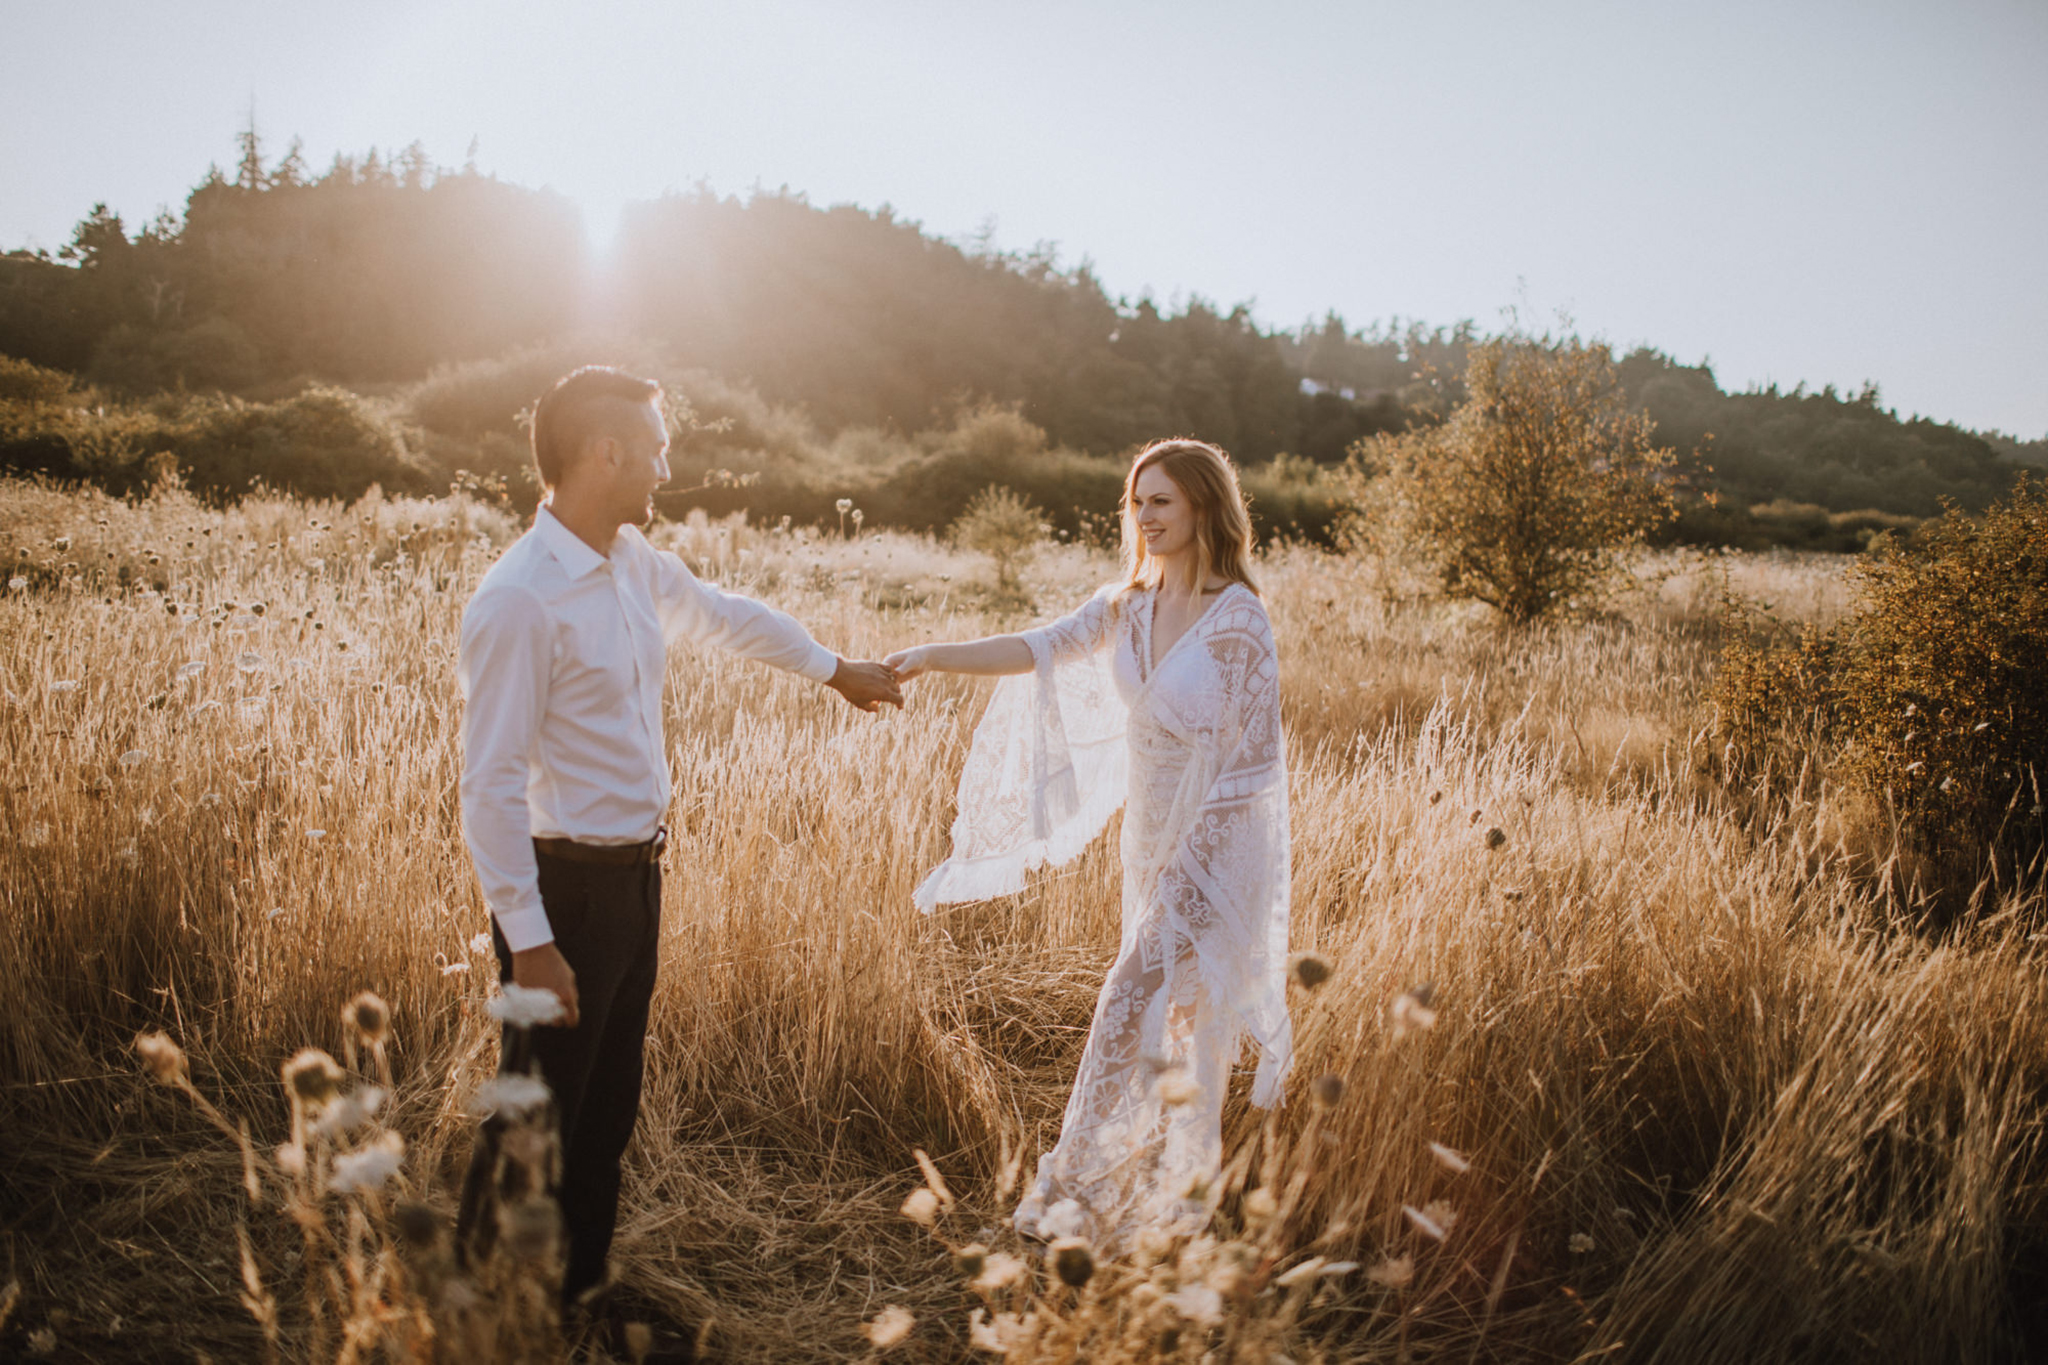 Myrtle and Moss Photography Styled Elopement / wedding Session, Victoria BC, Victoria Wedding Photographer